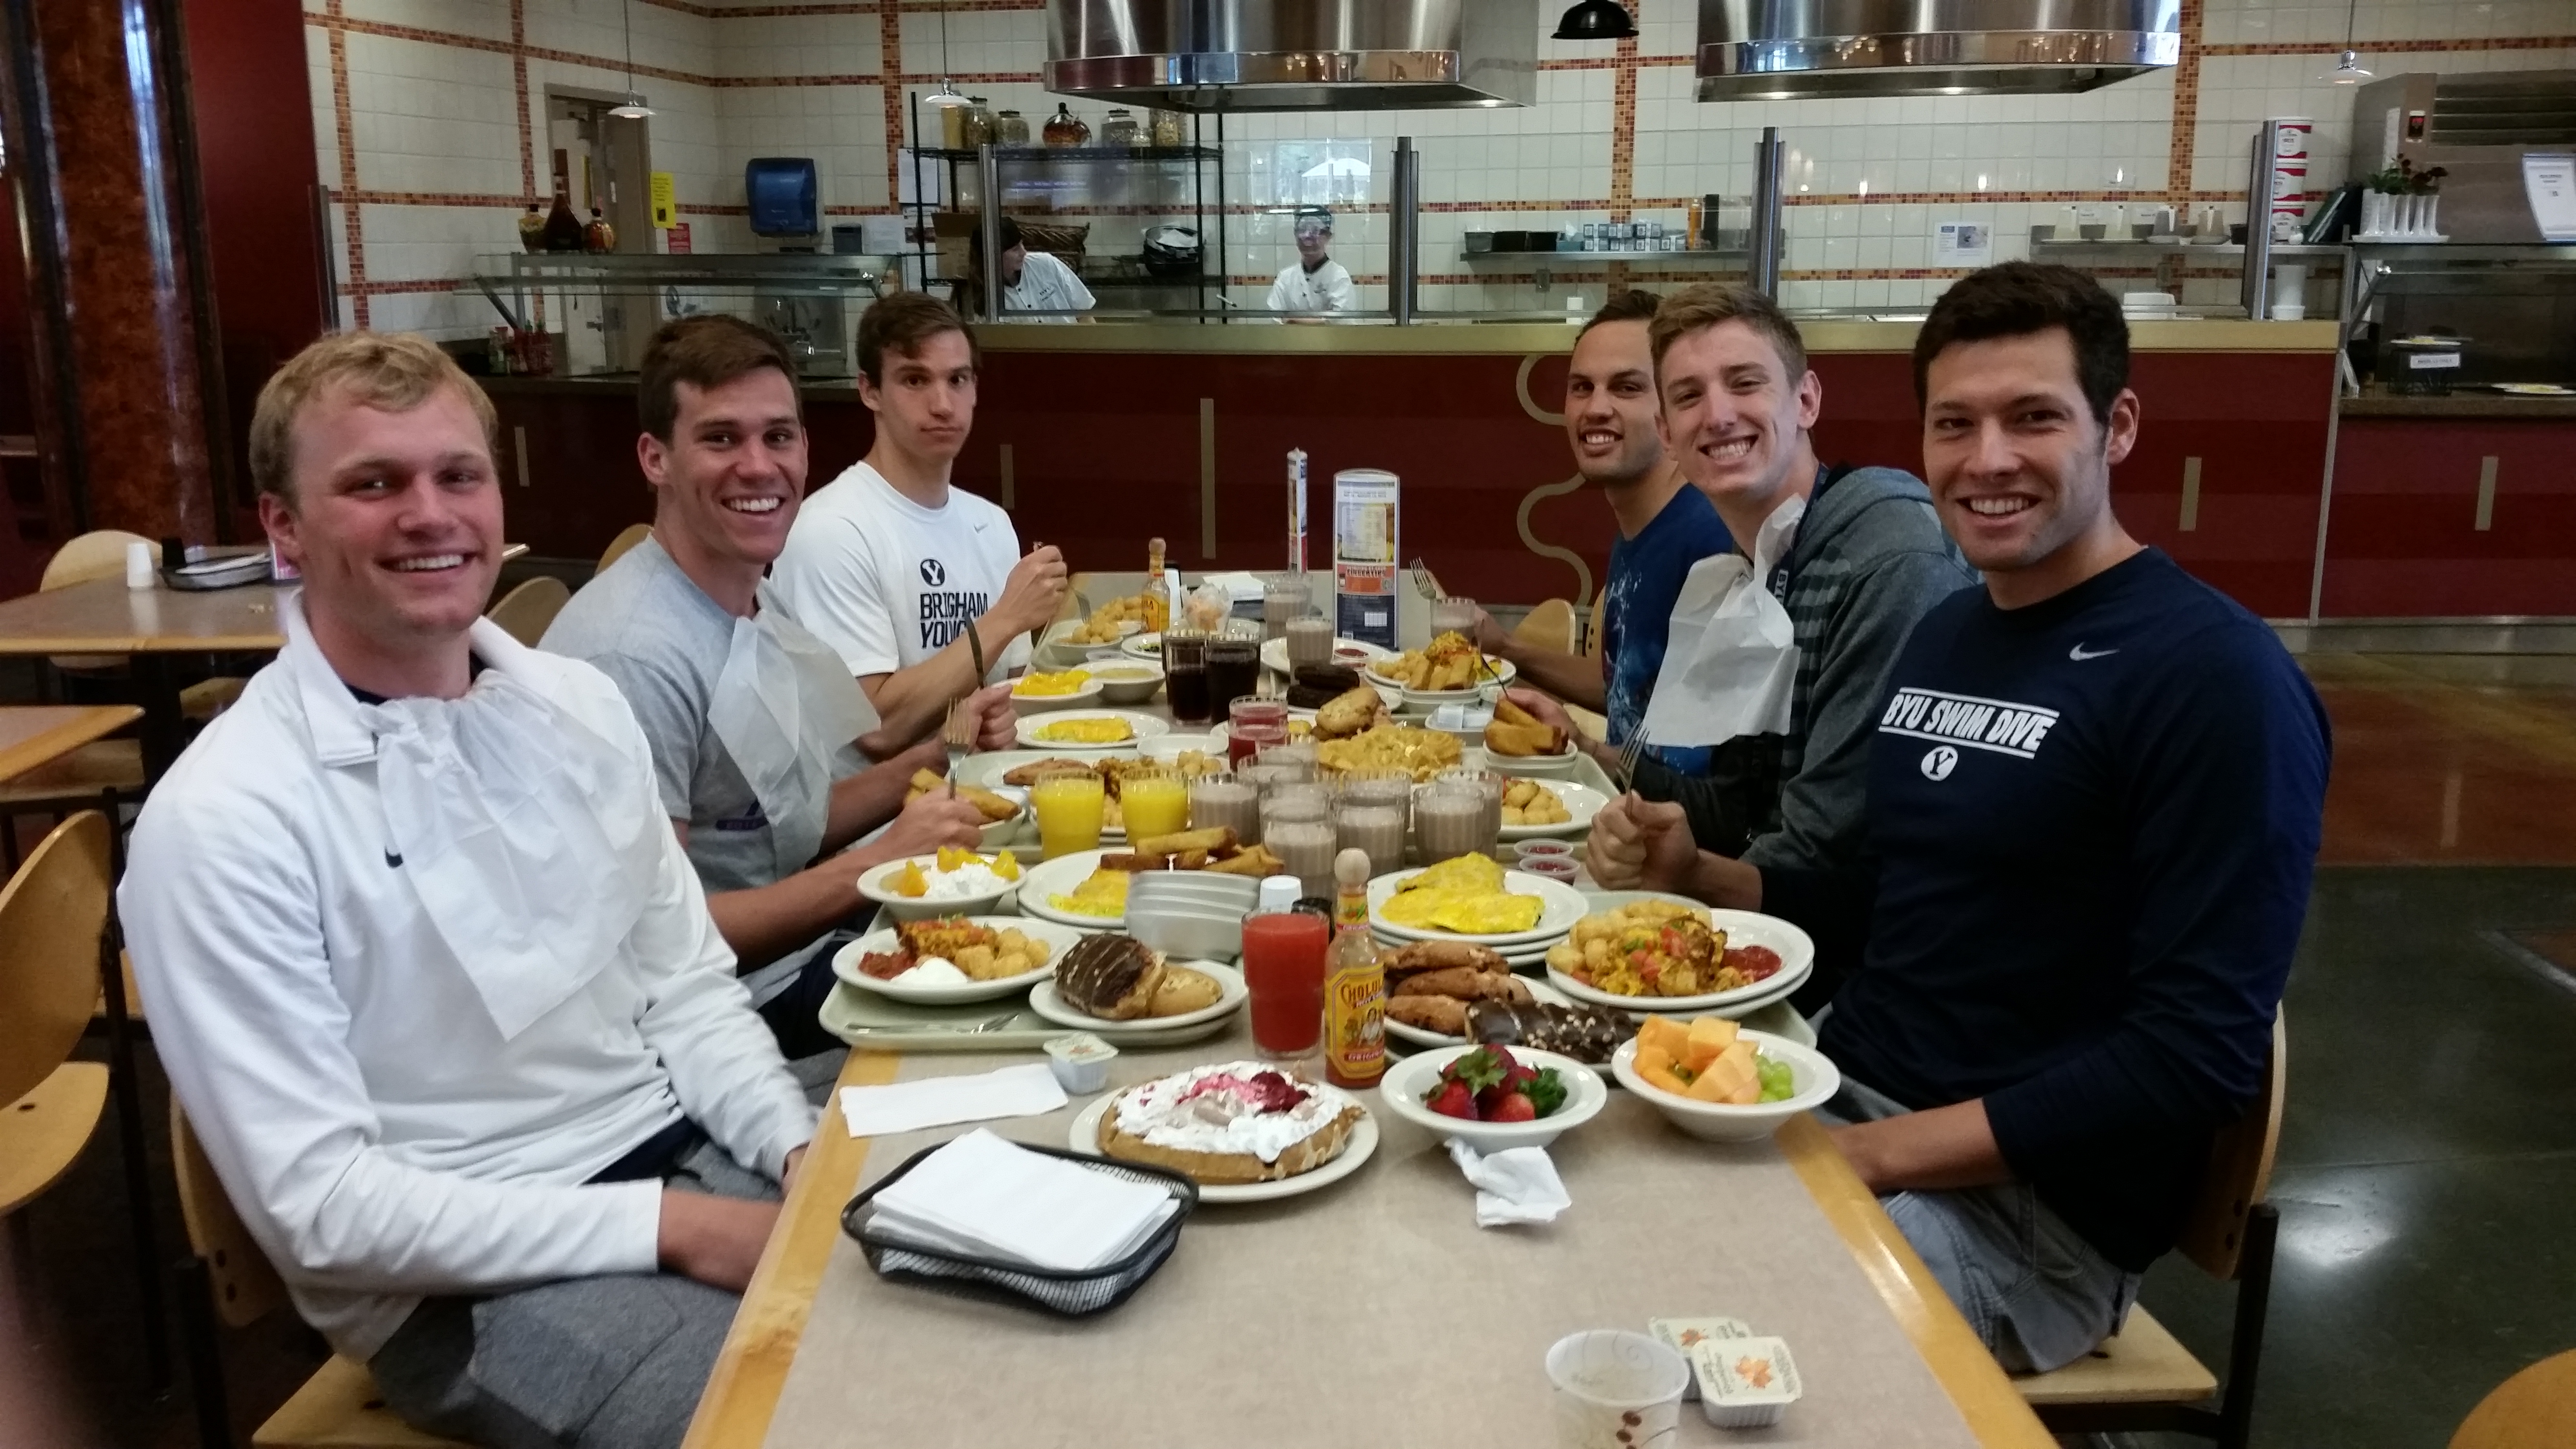 BYU Men's swim team eats at the Cannon Center after practice. The swim team eats 10,000 calories a day while in training. (Photo by Jake Taylor)